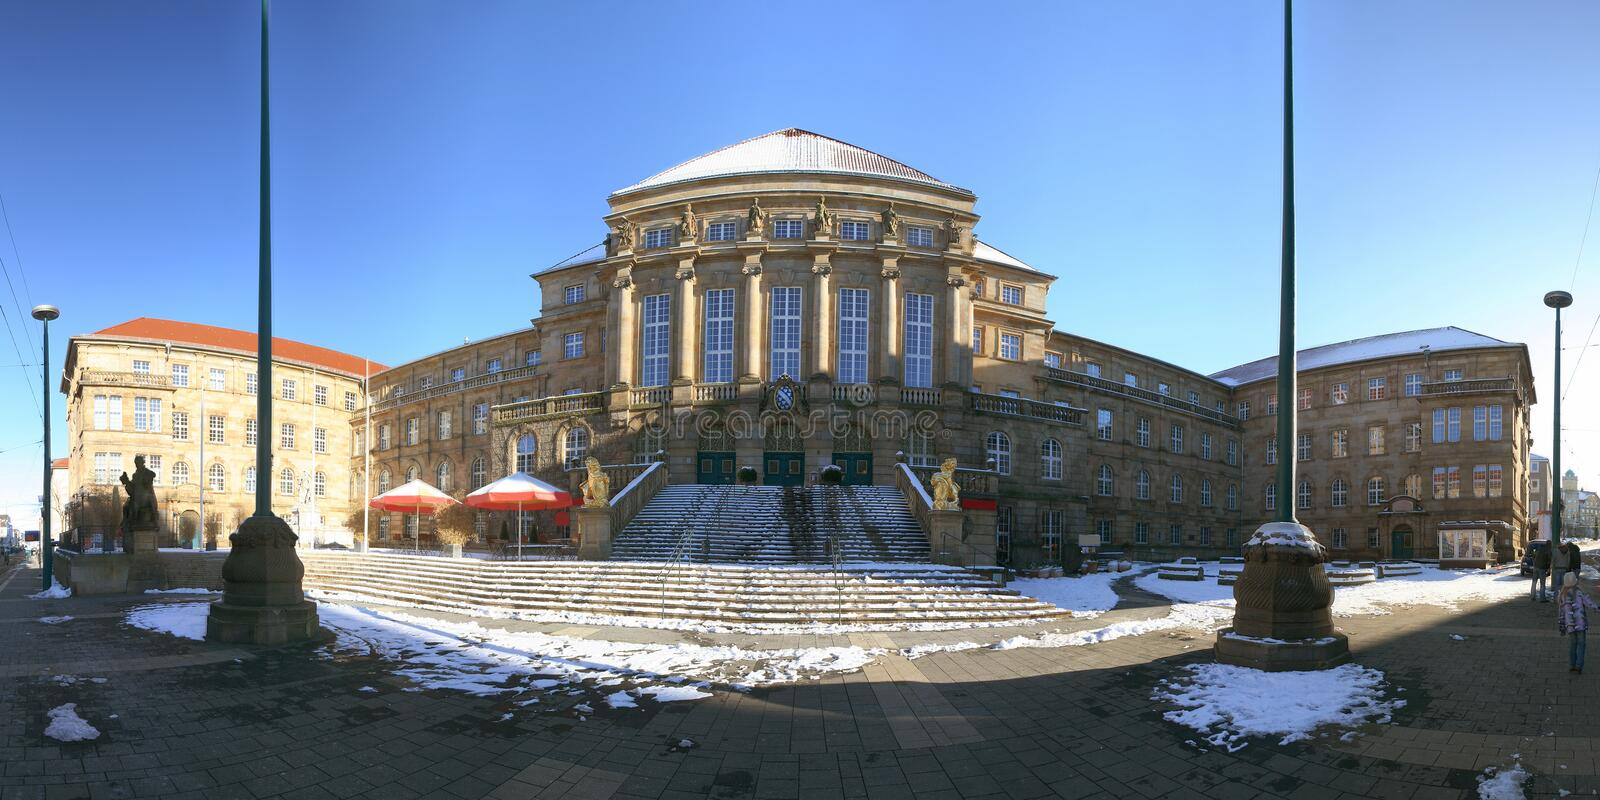 Download Townhall Of Kassel, Germany Stock Image - Image: 13864701